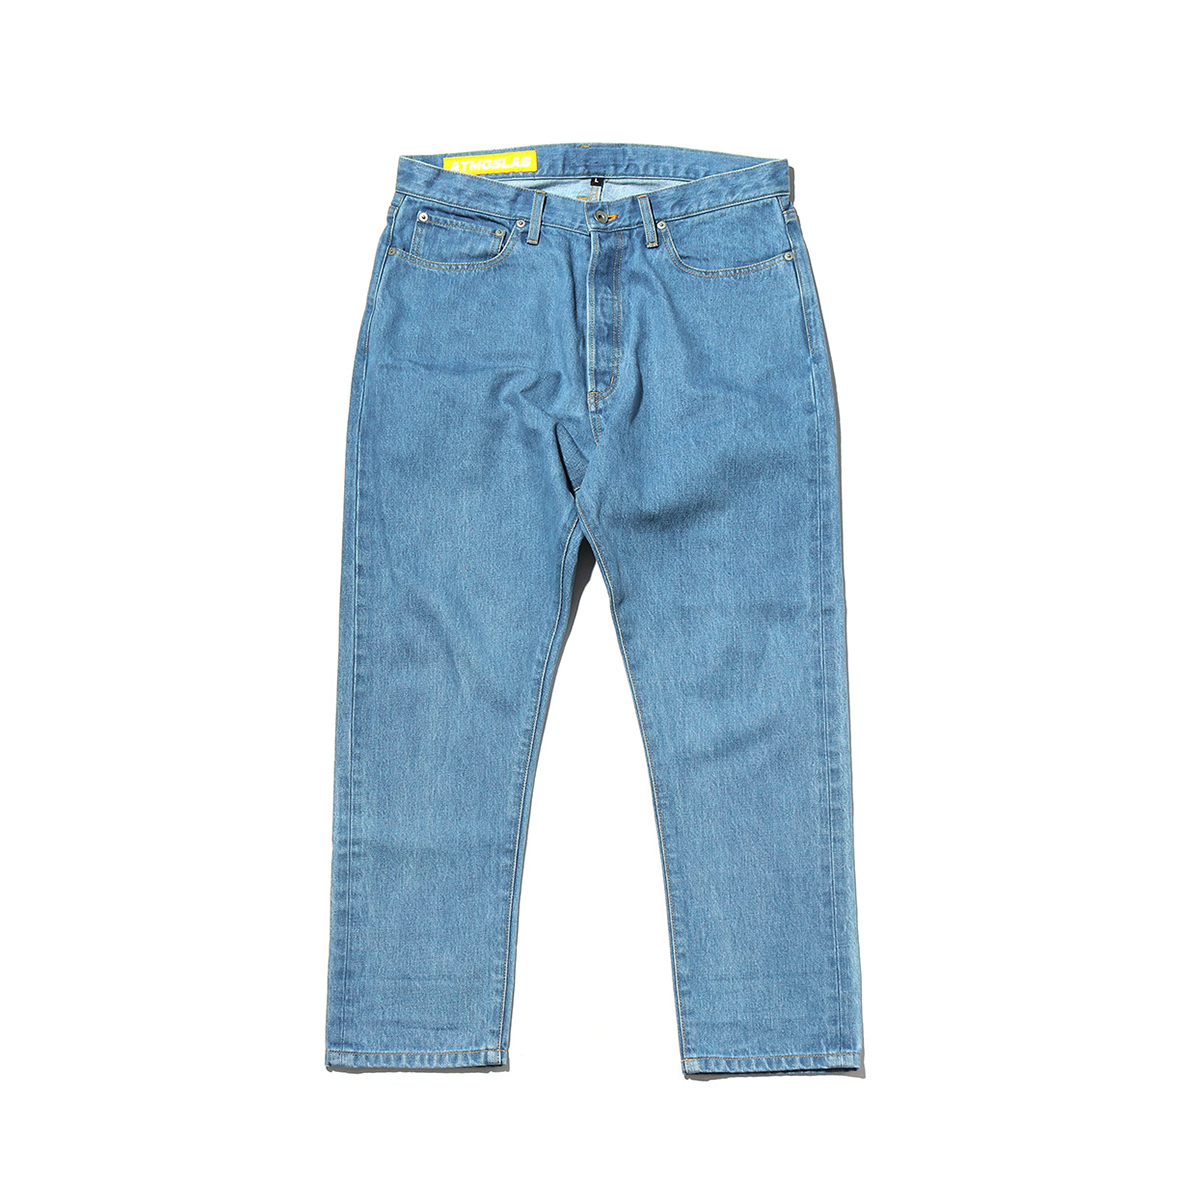 ATMOS LAB LASER LOGO DENIM PANTS